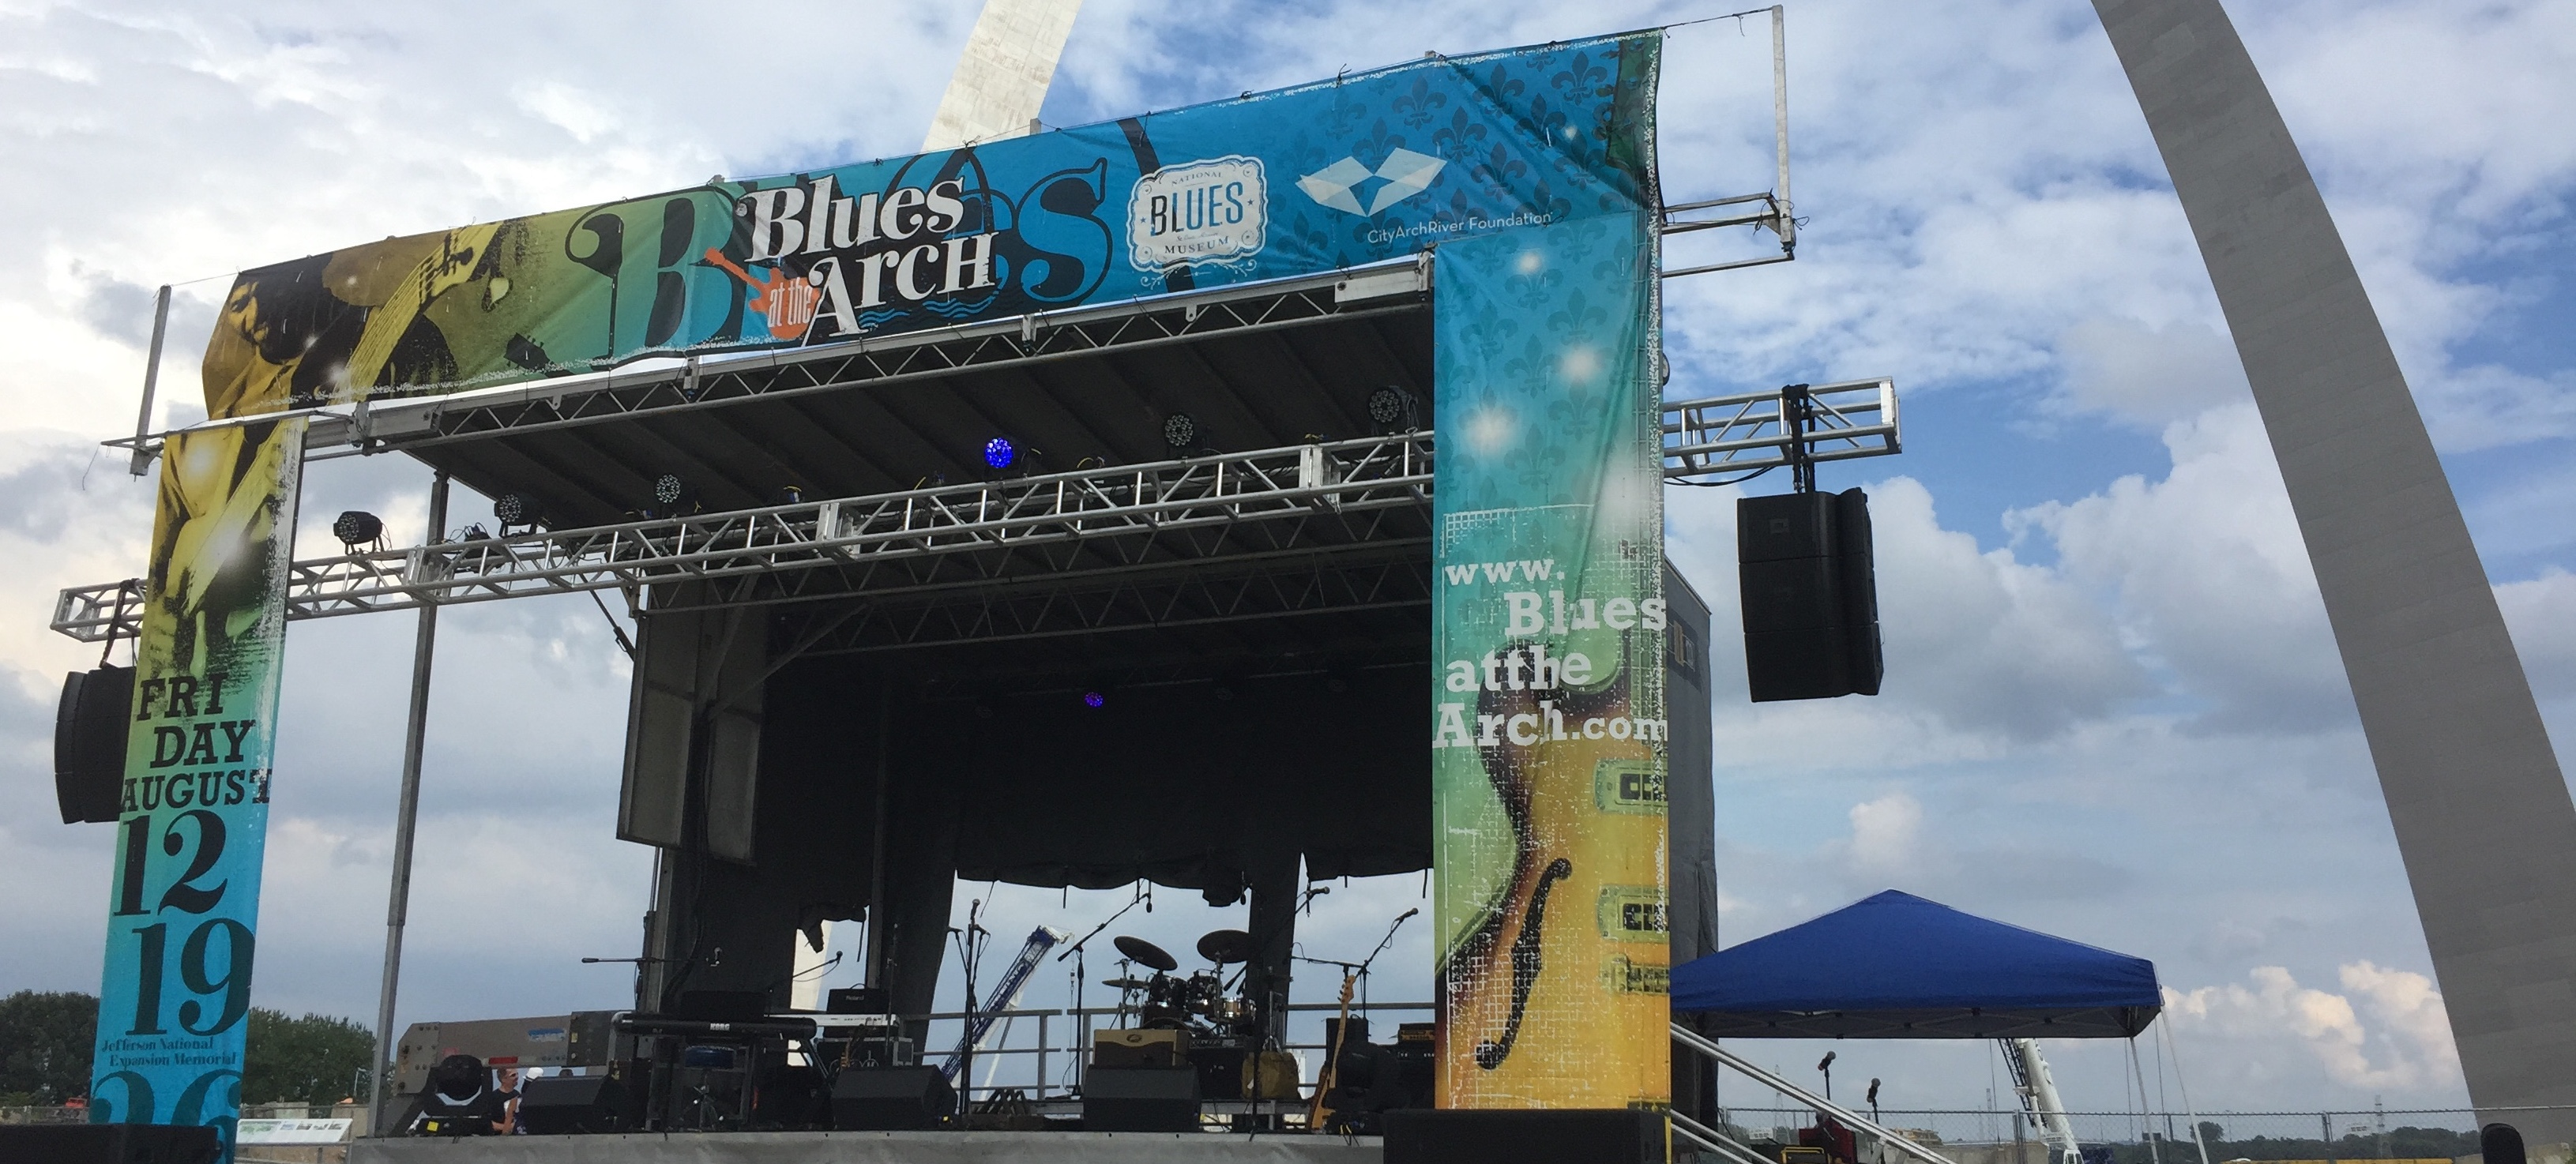 Blues at the Arch concert production